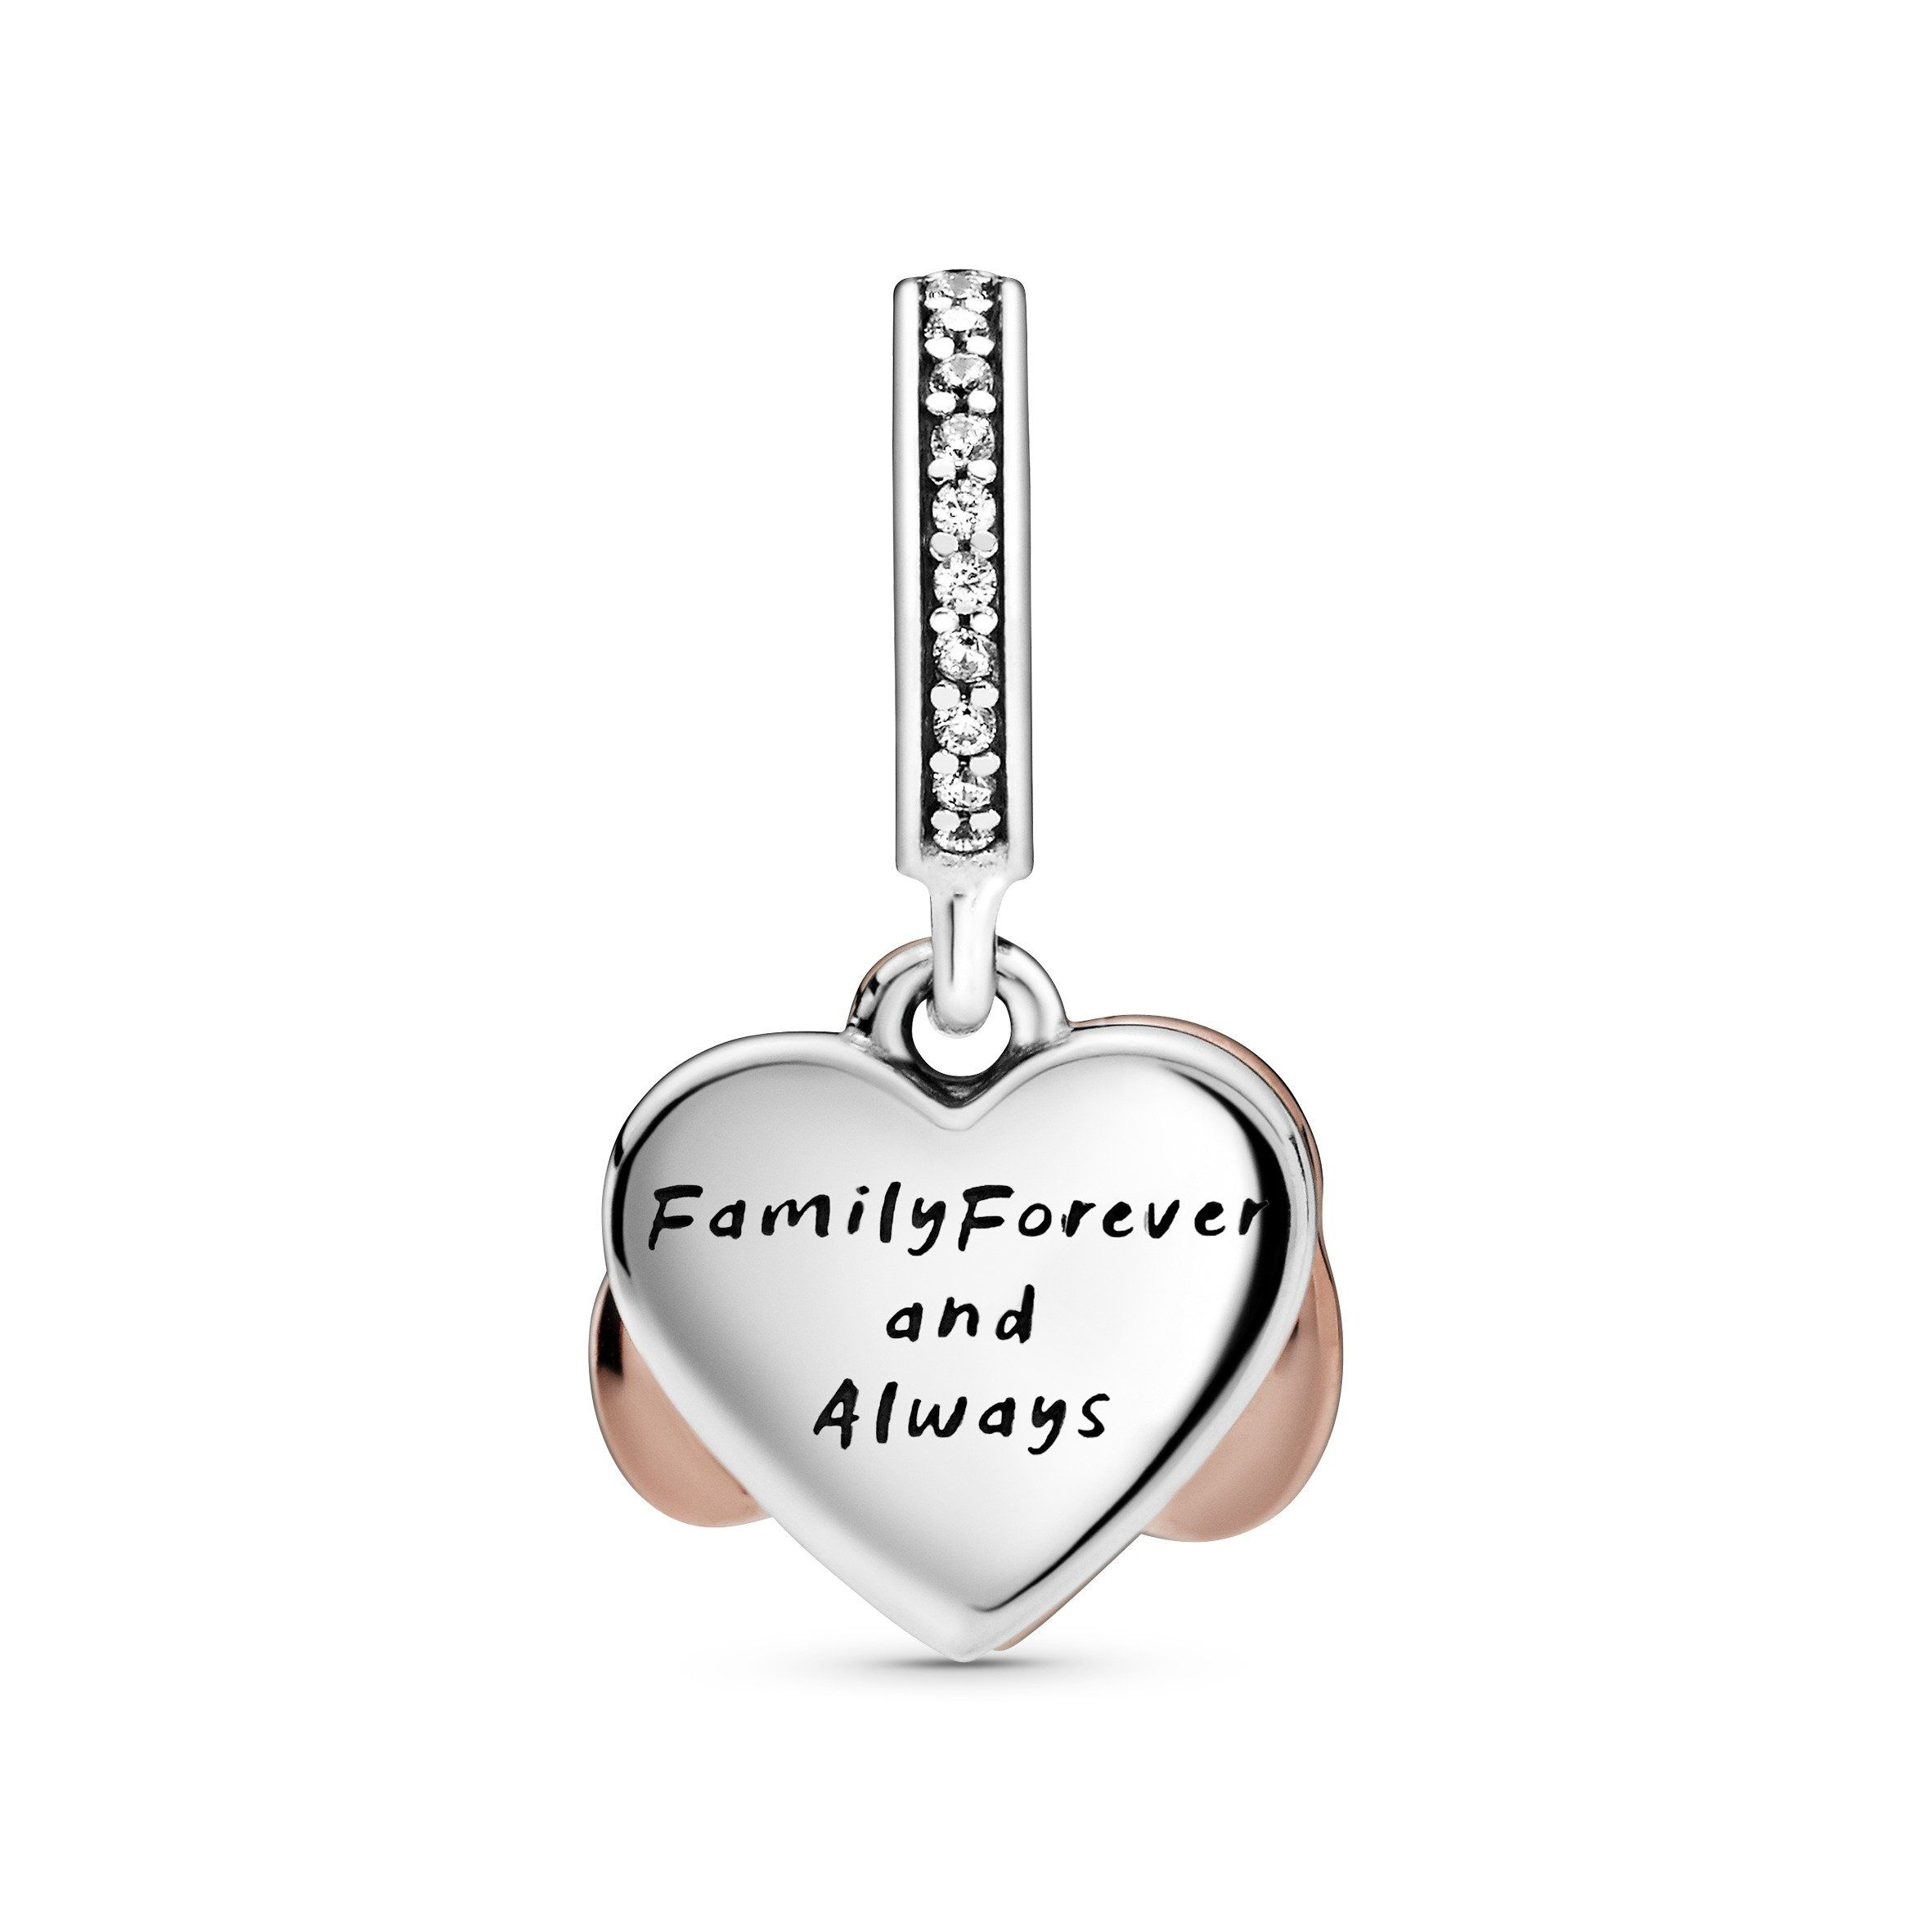 """Take your love to infinity and beyond with this sparkling double dangle charm. The front dangle is hand-finished in Pandora Rose™, our 14k rose gold-plated unique metal blend, and features an infinity sign wrapped around a sparkling heart set with clear cubic zirconia surrounded by white rhodium plating. The back dangle's pink hand-applied enamel provides a sweet backdrop to the love-filled message of the dangle charm with the engraving """"Family forever and always""""."""